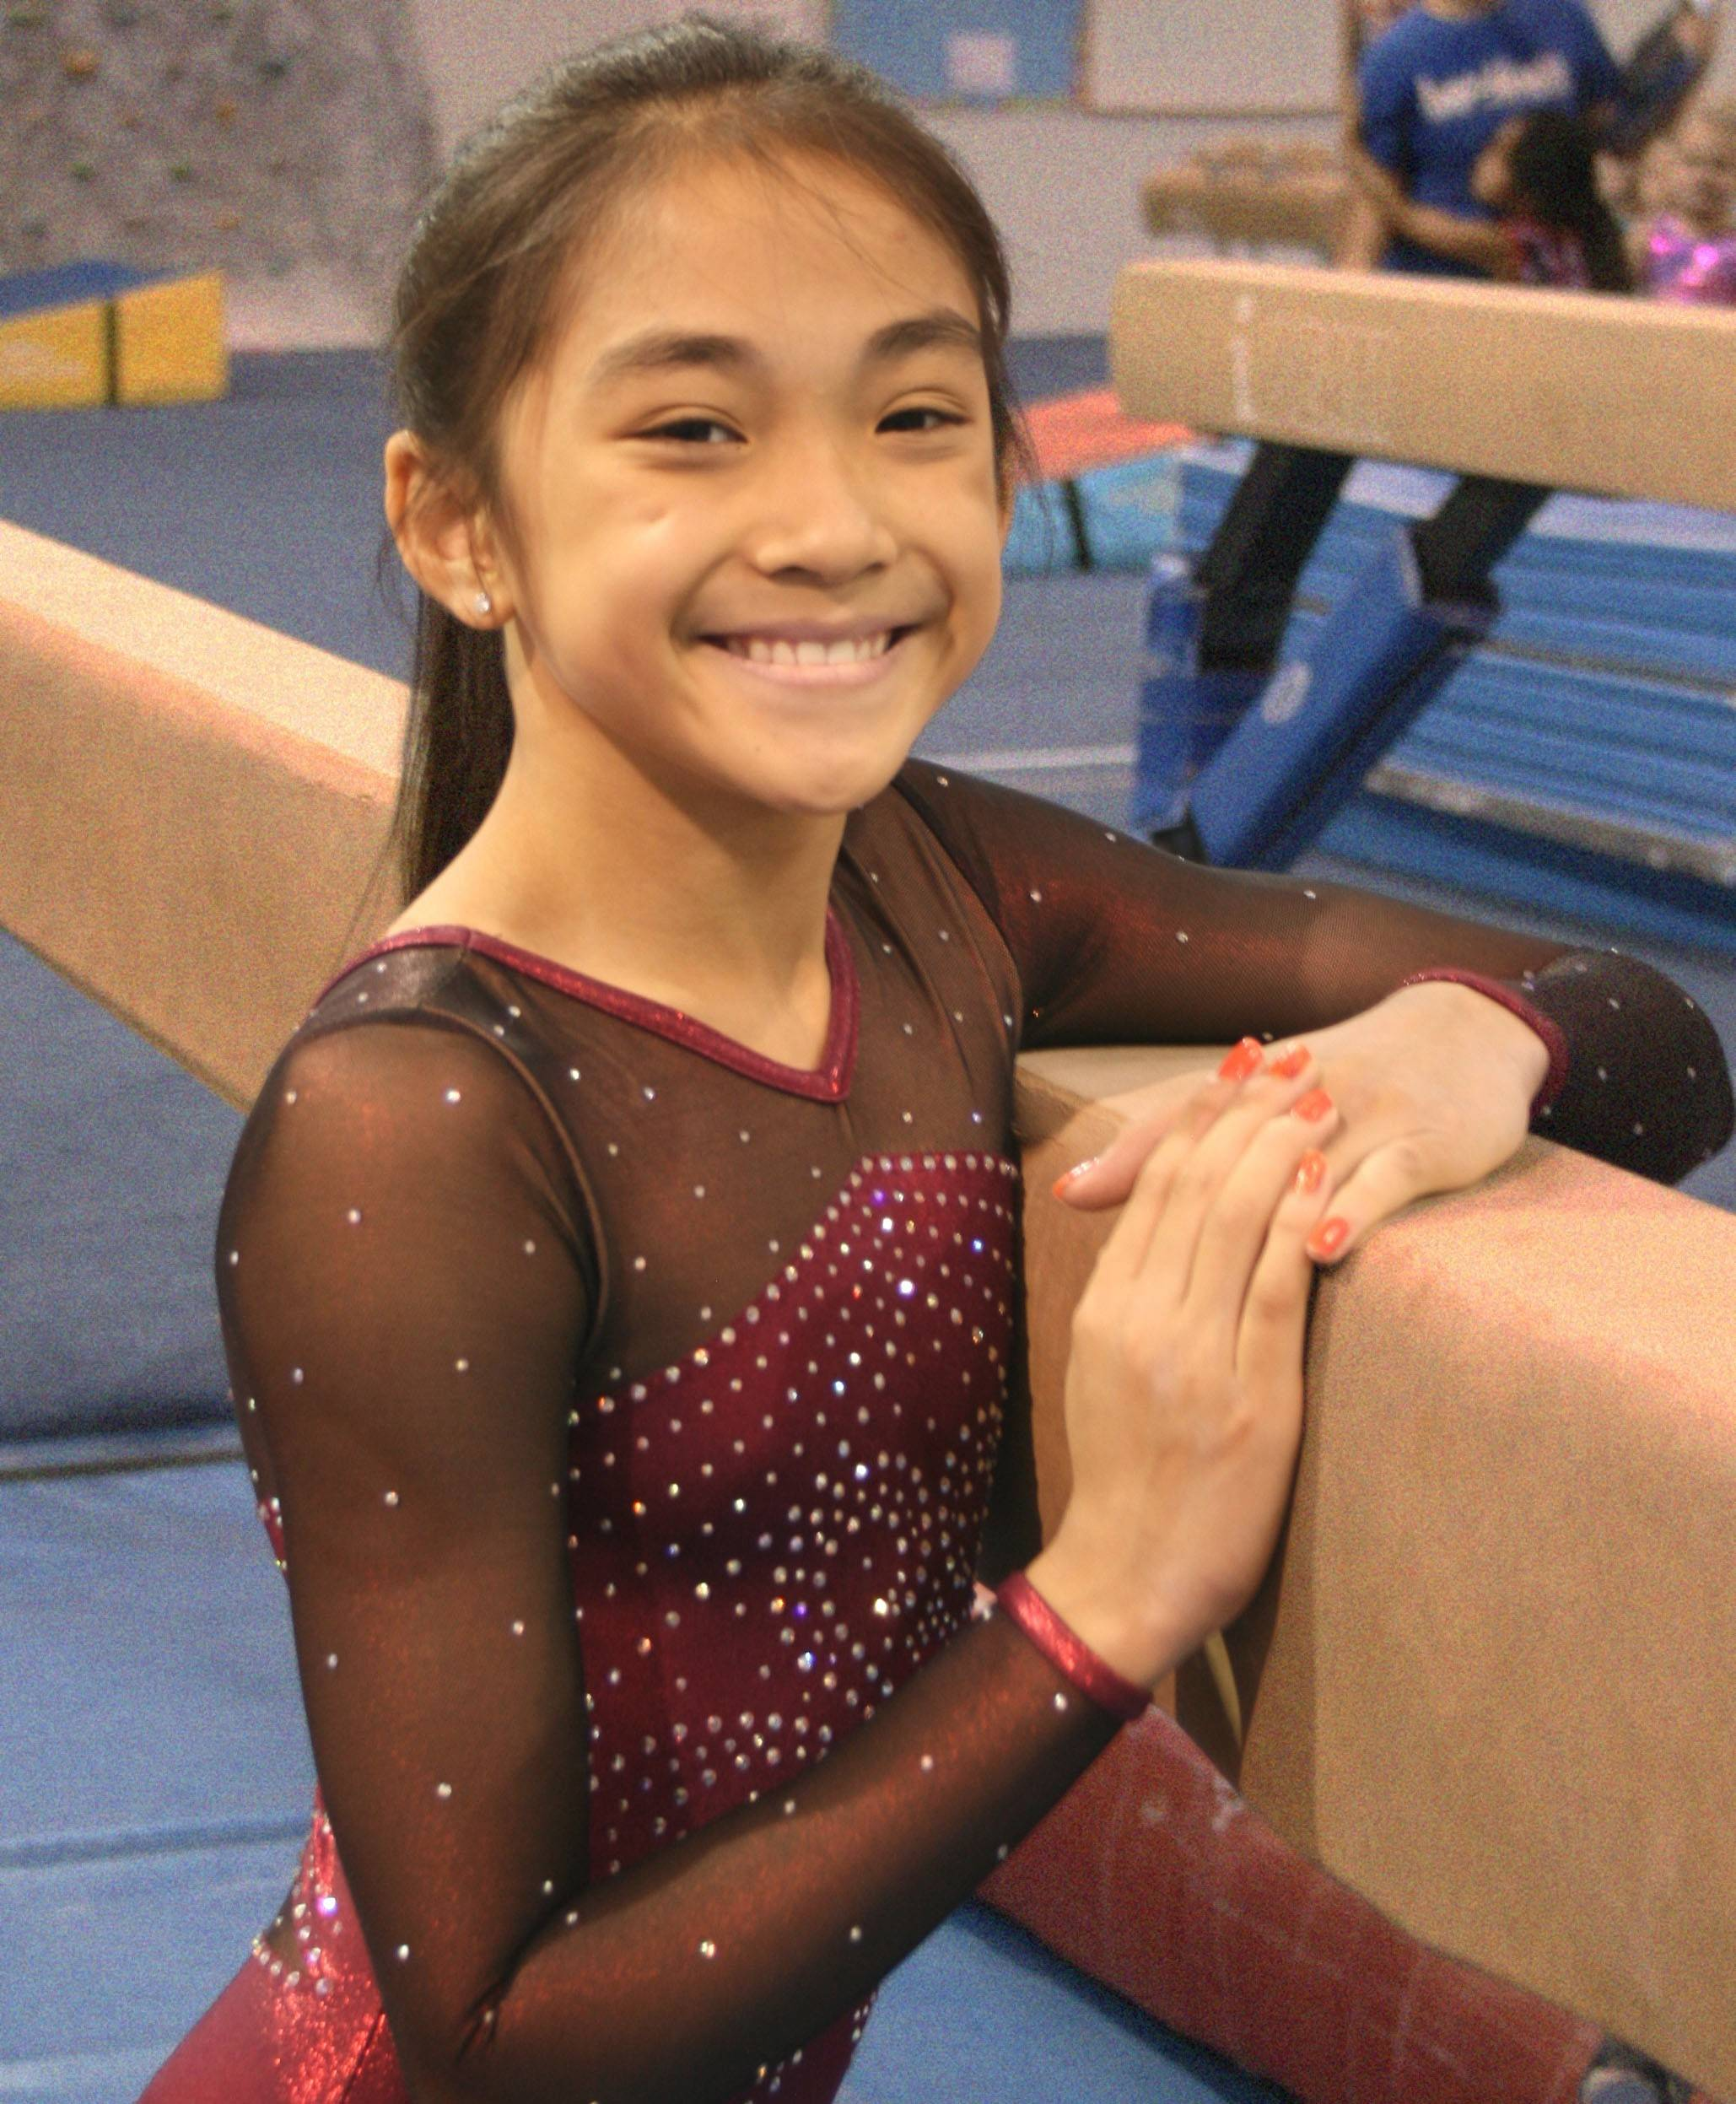 Makenzie Sedlacek of West Chicago will compete at the Secret U.S. Classic Gymnastics Championship at the Sears Centre Arena in Hoffman Estates.